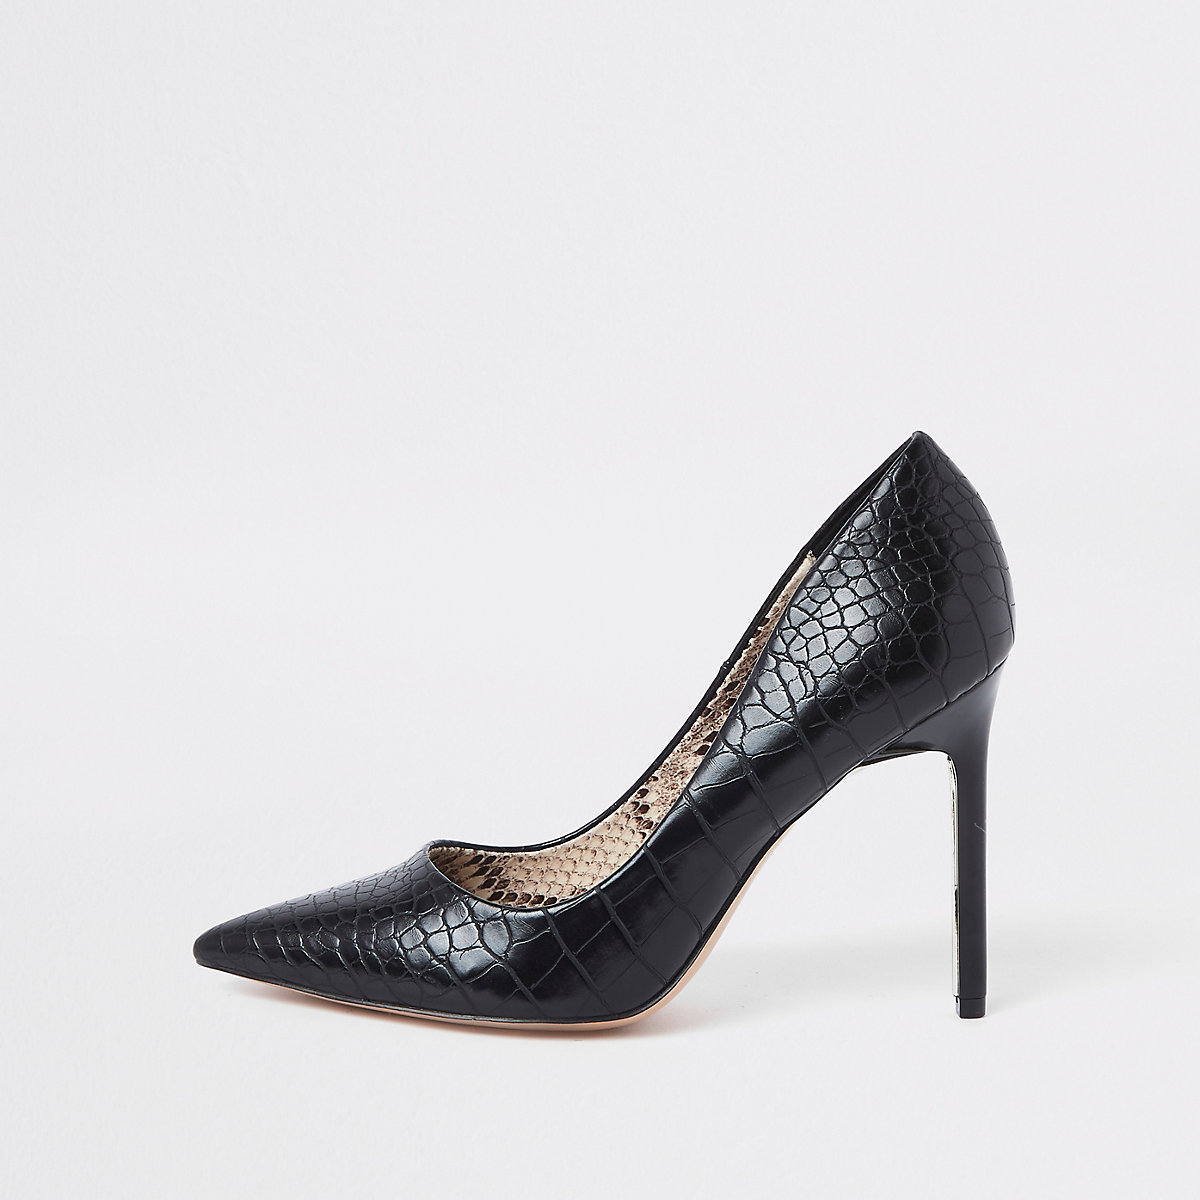 Black croc embossed court shoes